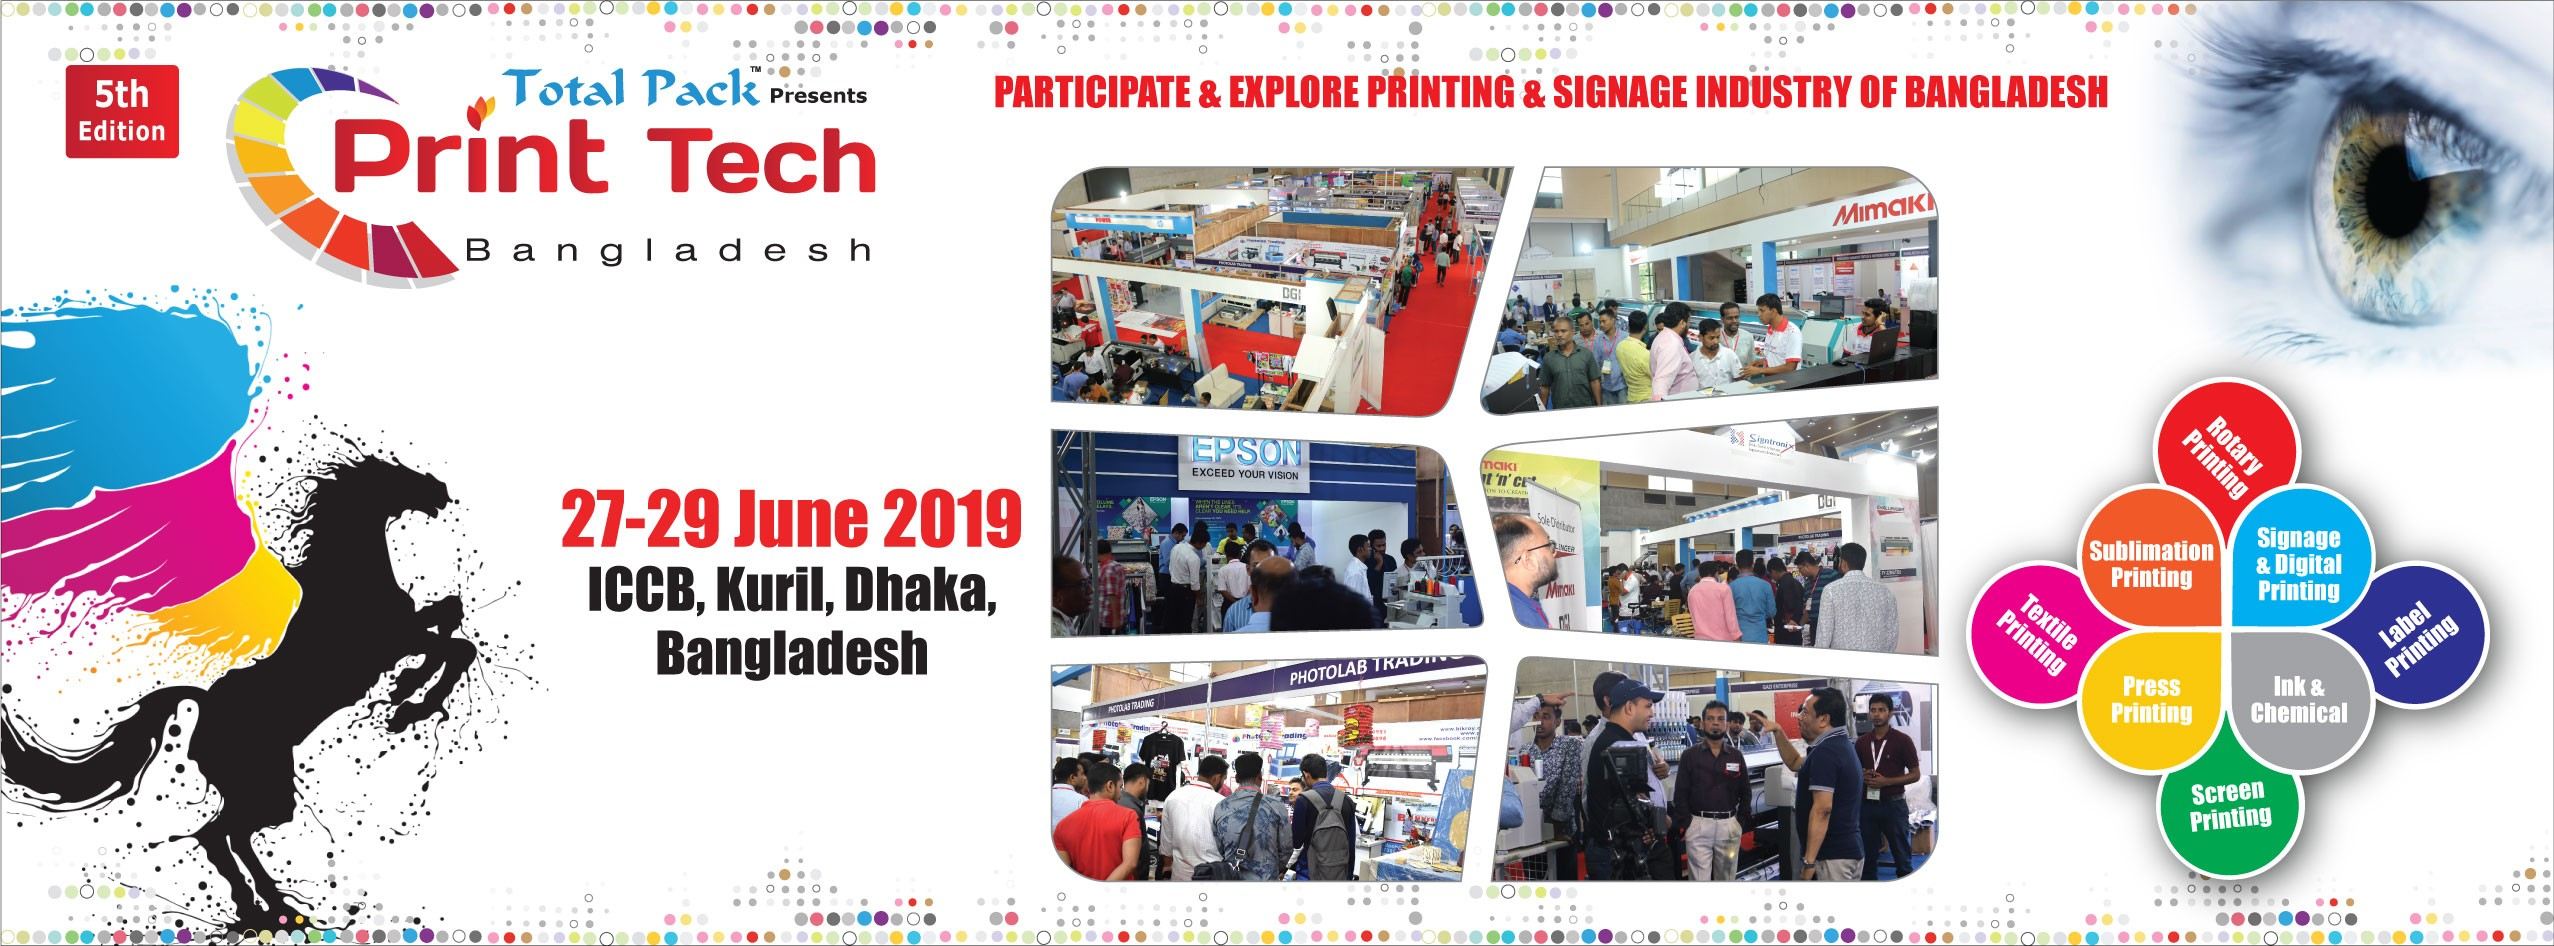 LIMRA Trade Fairs & Exhibitions Pvt  Ltd  | LinkedIn